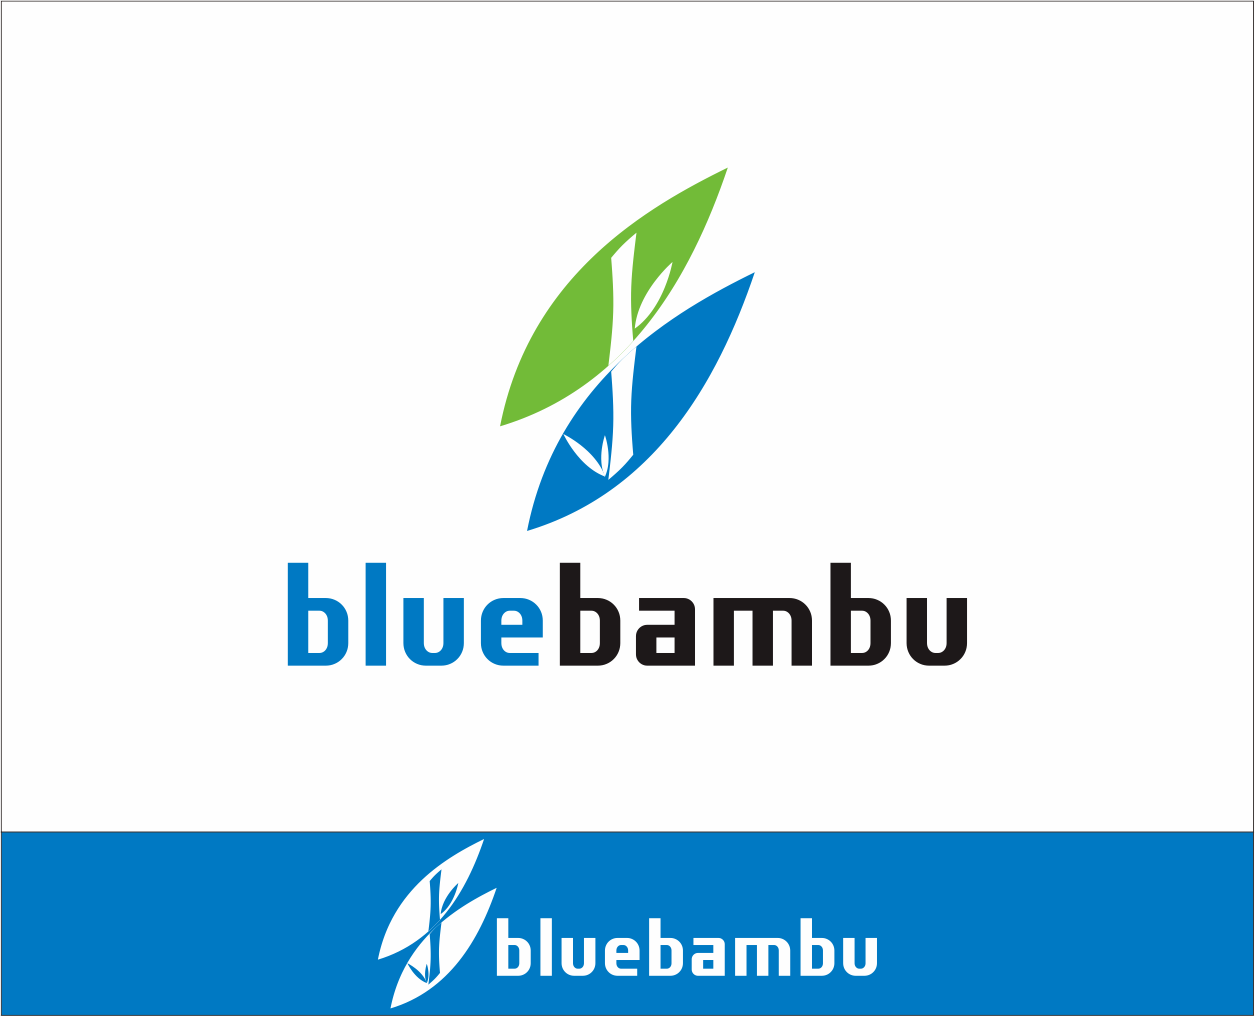 Logo Design by Armada Jamaluddin - Entry No. 79 in the Logo Design Contest New Logo Design for blubambu.